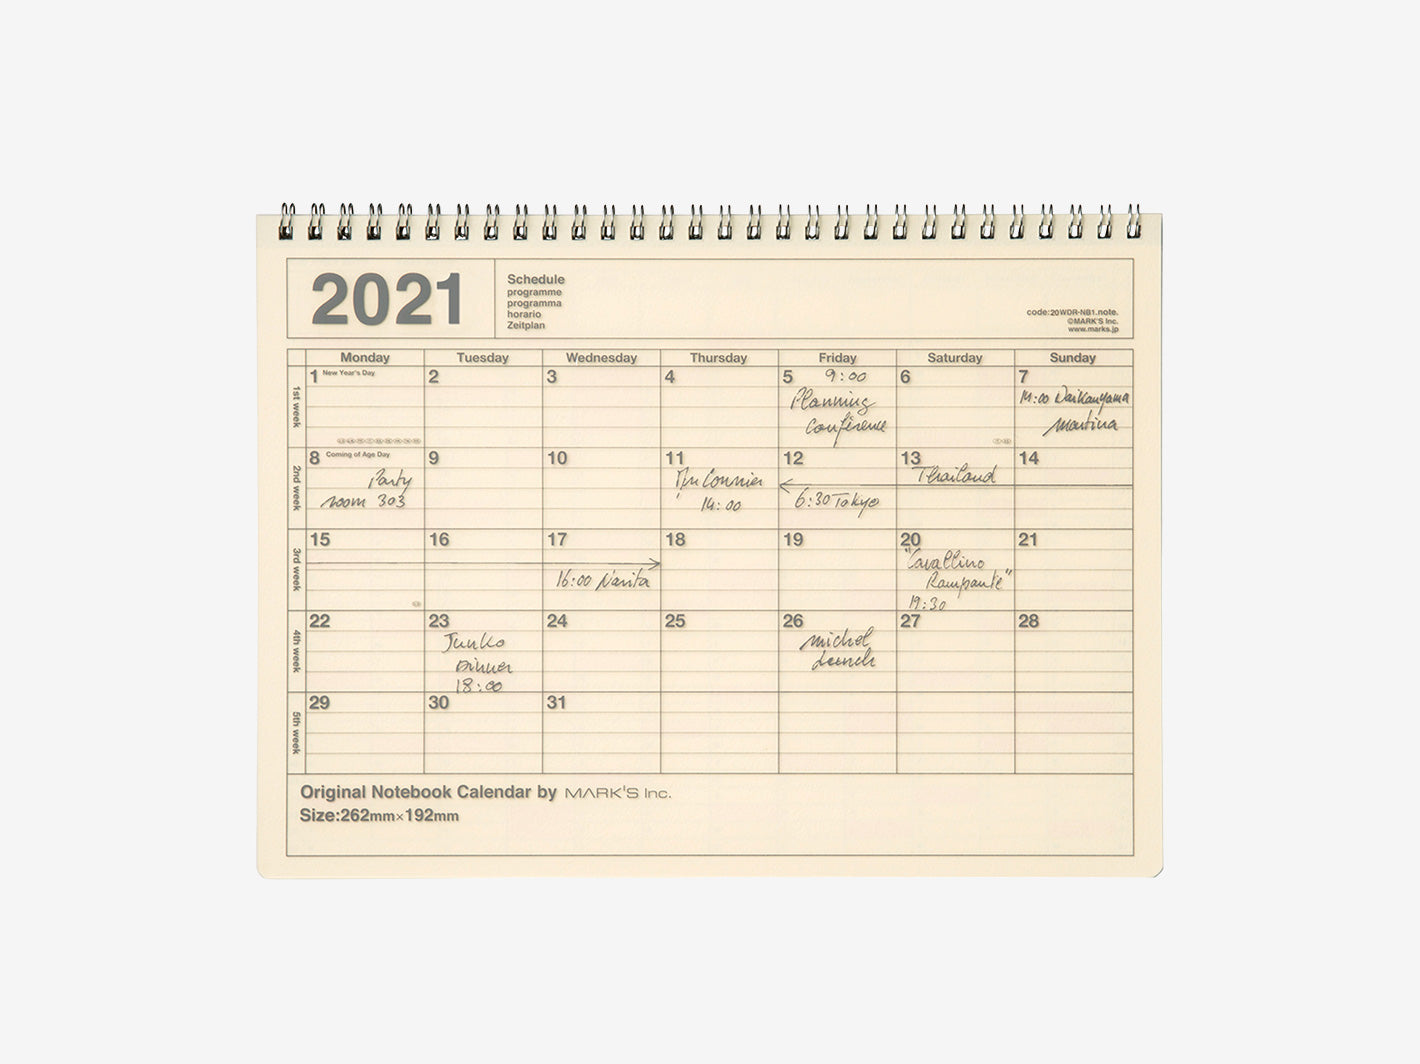 2021 Notebook Calendar Medium Ivory